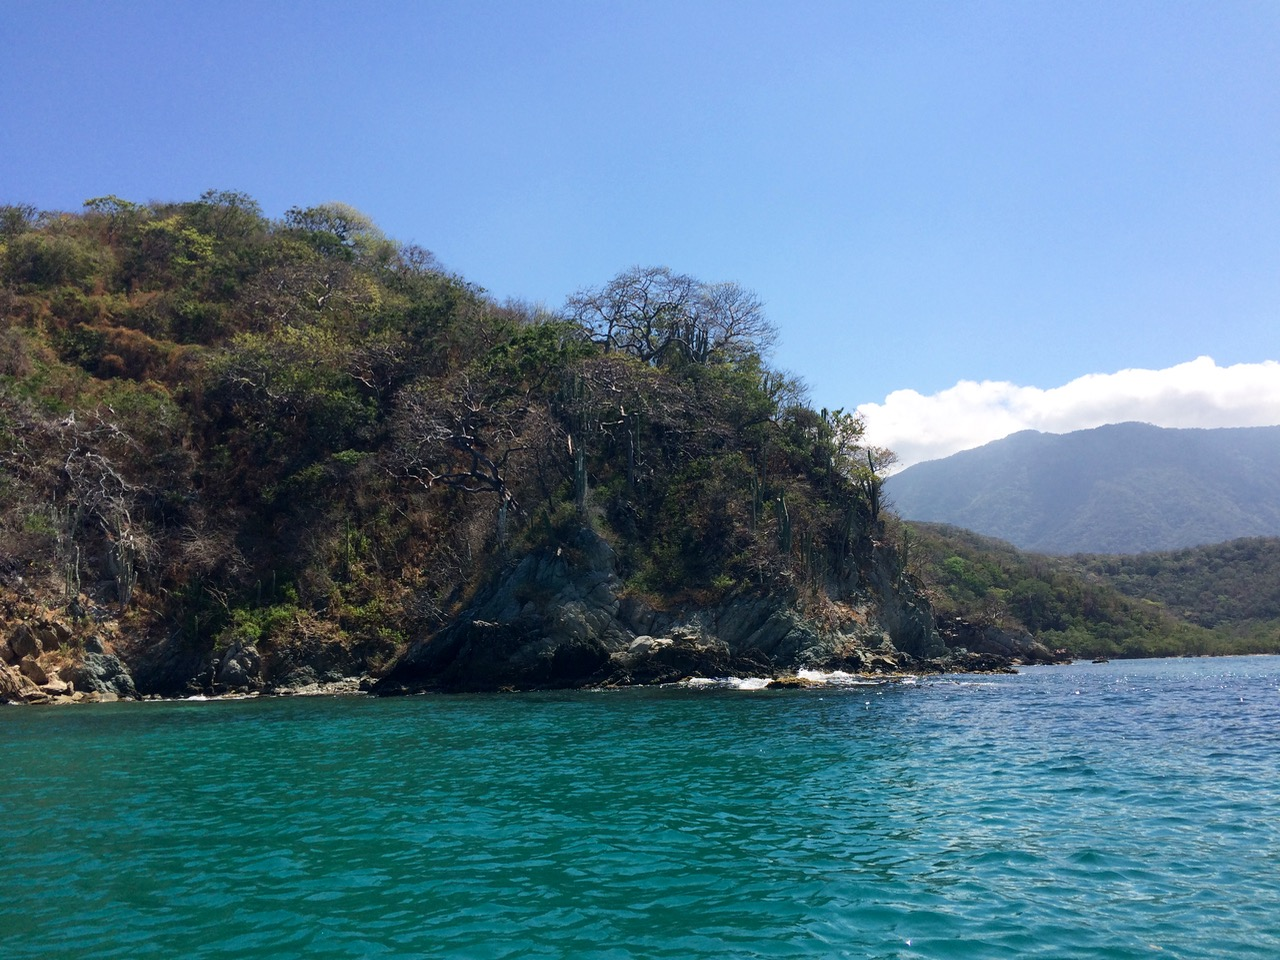 View of Tayrona from the boat